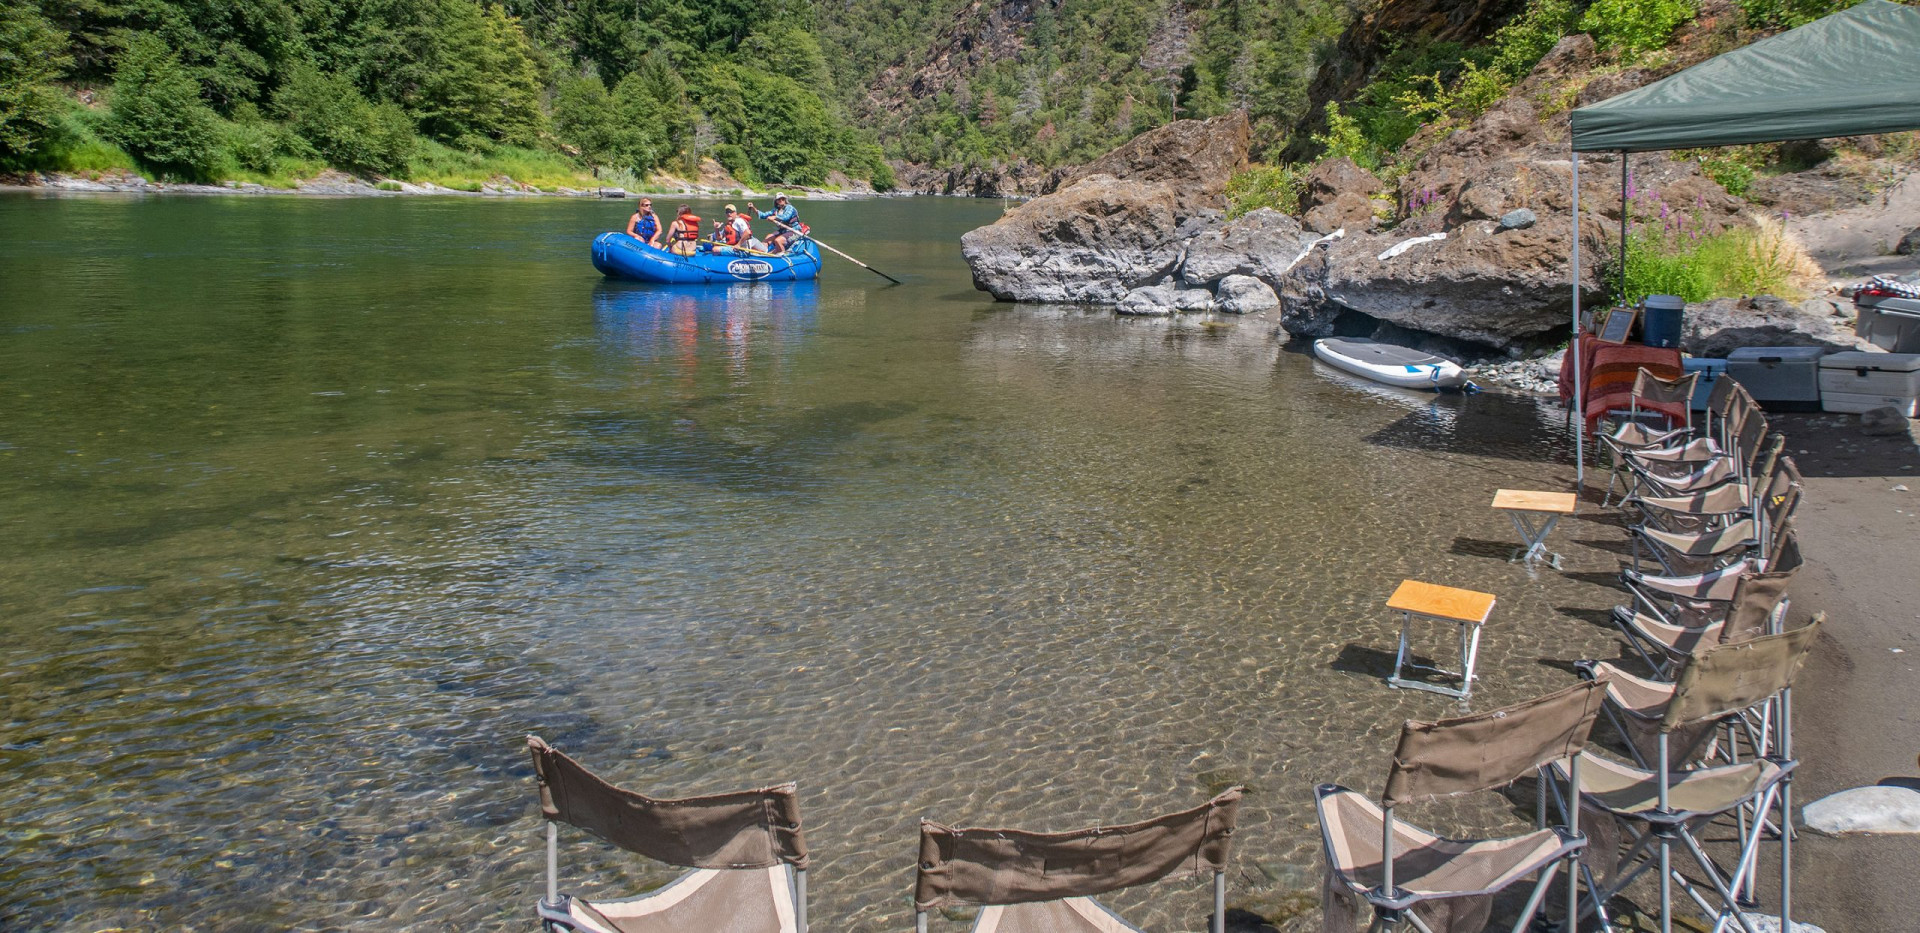 Floating into riverside camp - Luxury camping (glamping) rafting trips